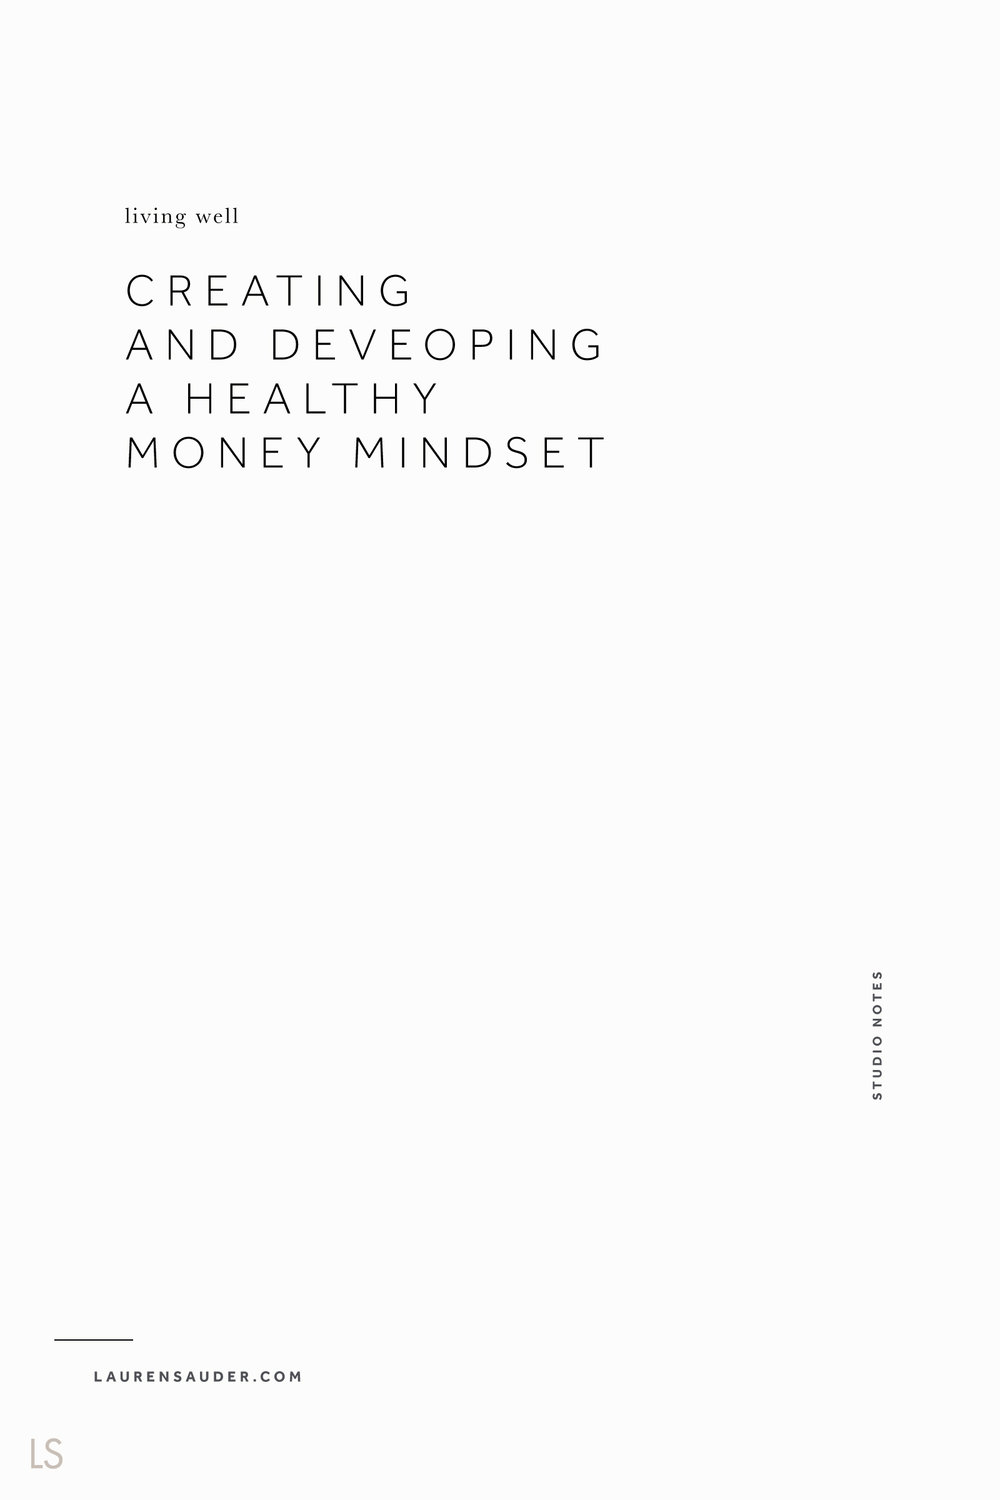 Creating and Developing a Healthy Money Mindset - Lauren Sauder #money #budgeting money mindset, budgeting money, money health, money conscious, financial freedom